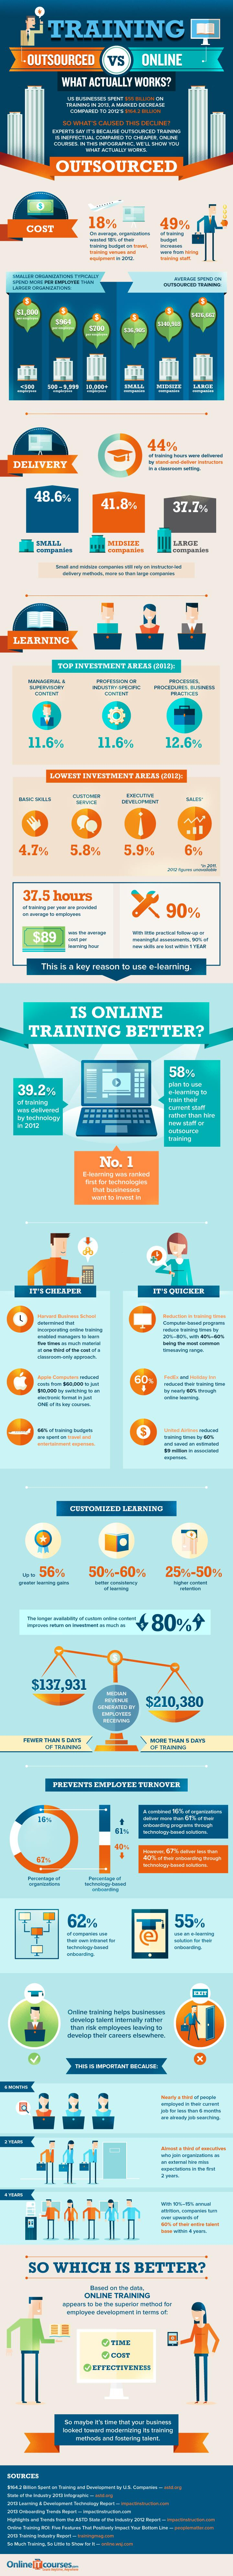 Training-Outsourced-Vs-Online